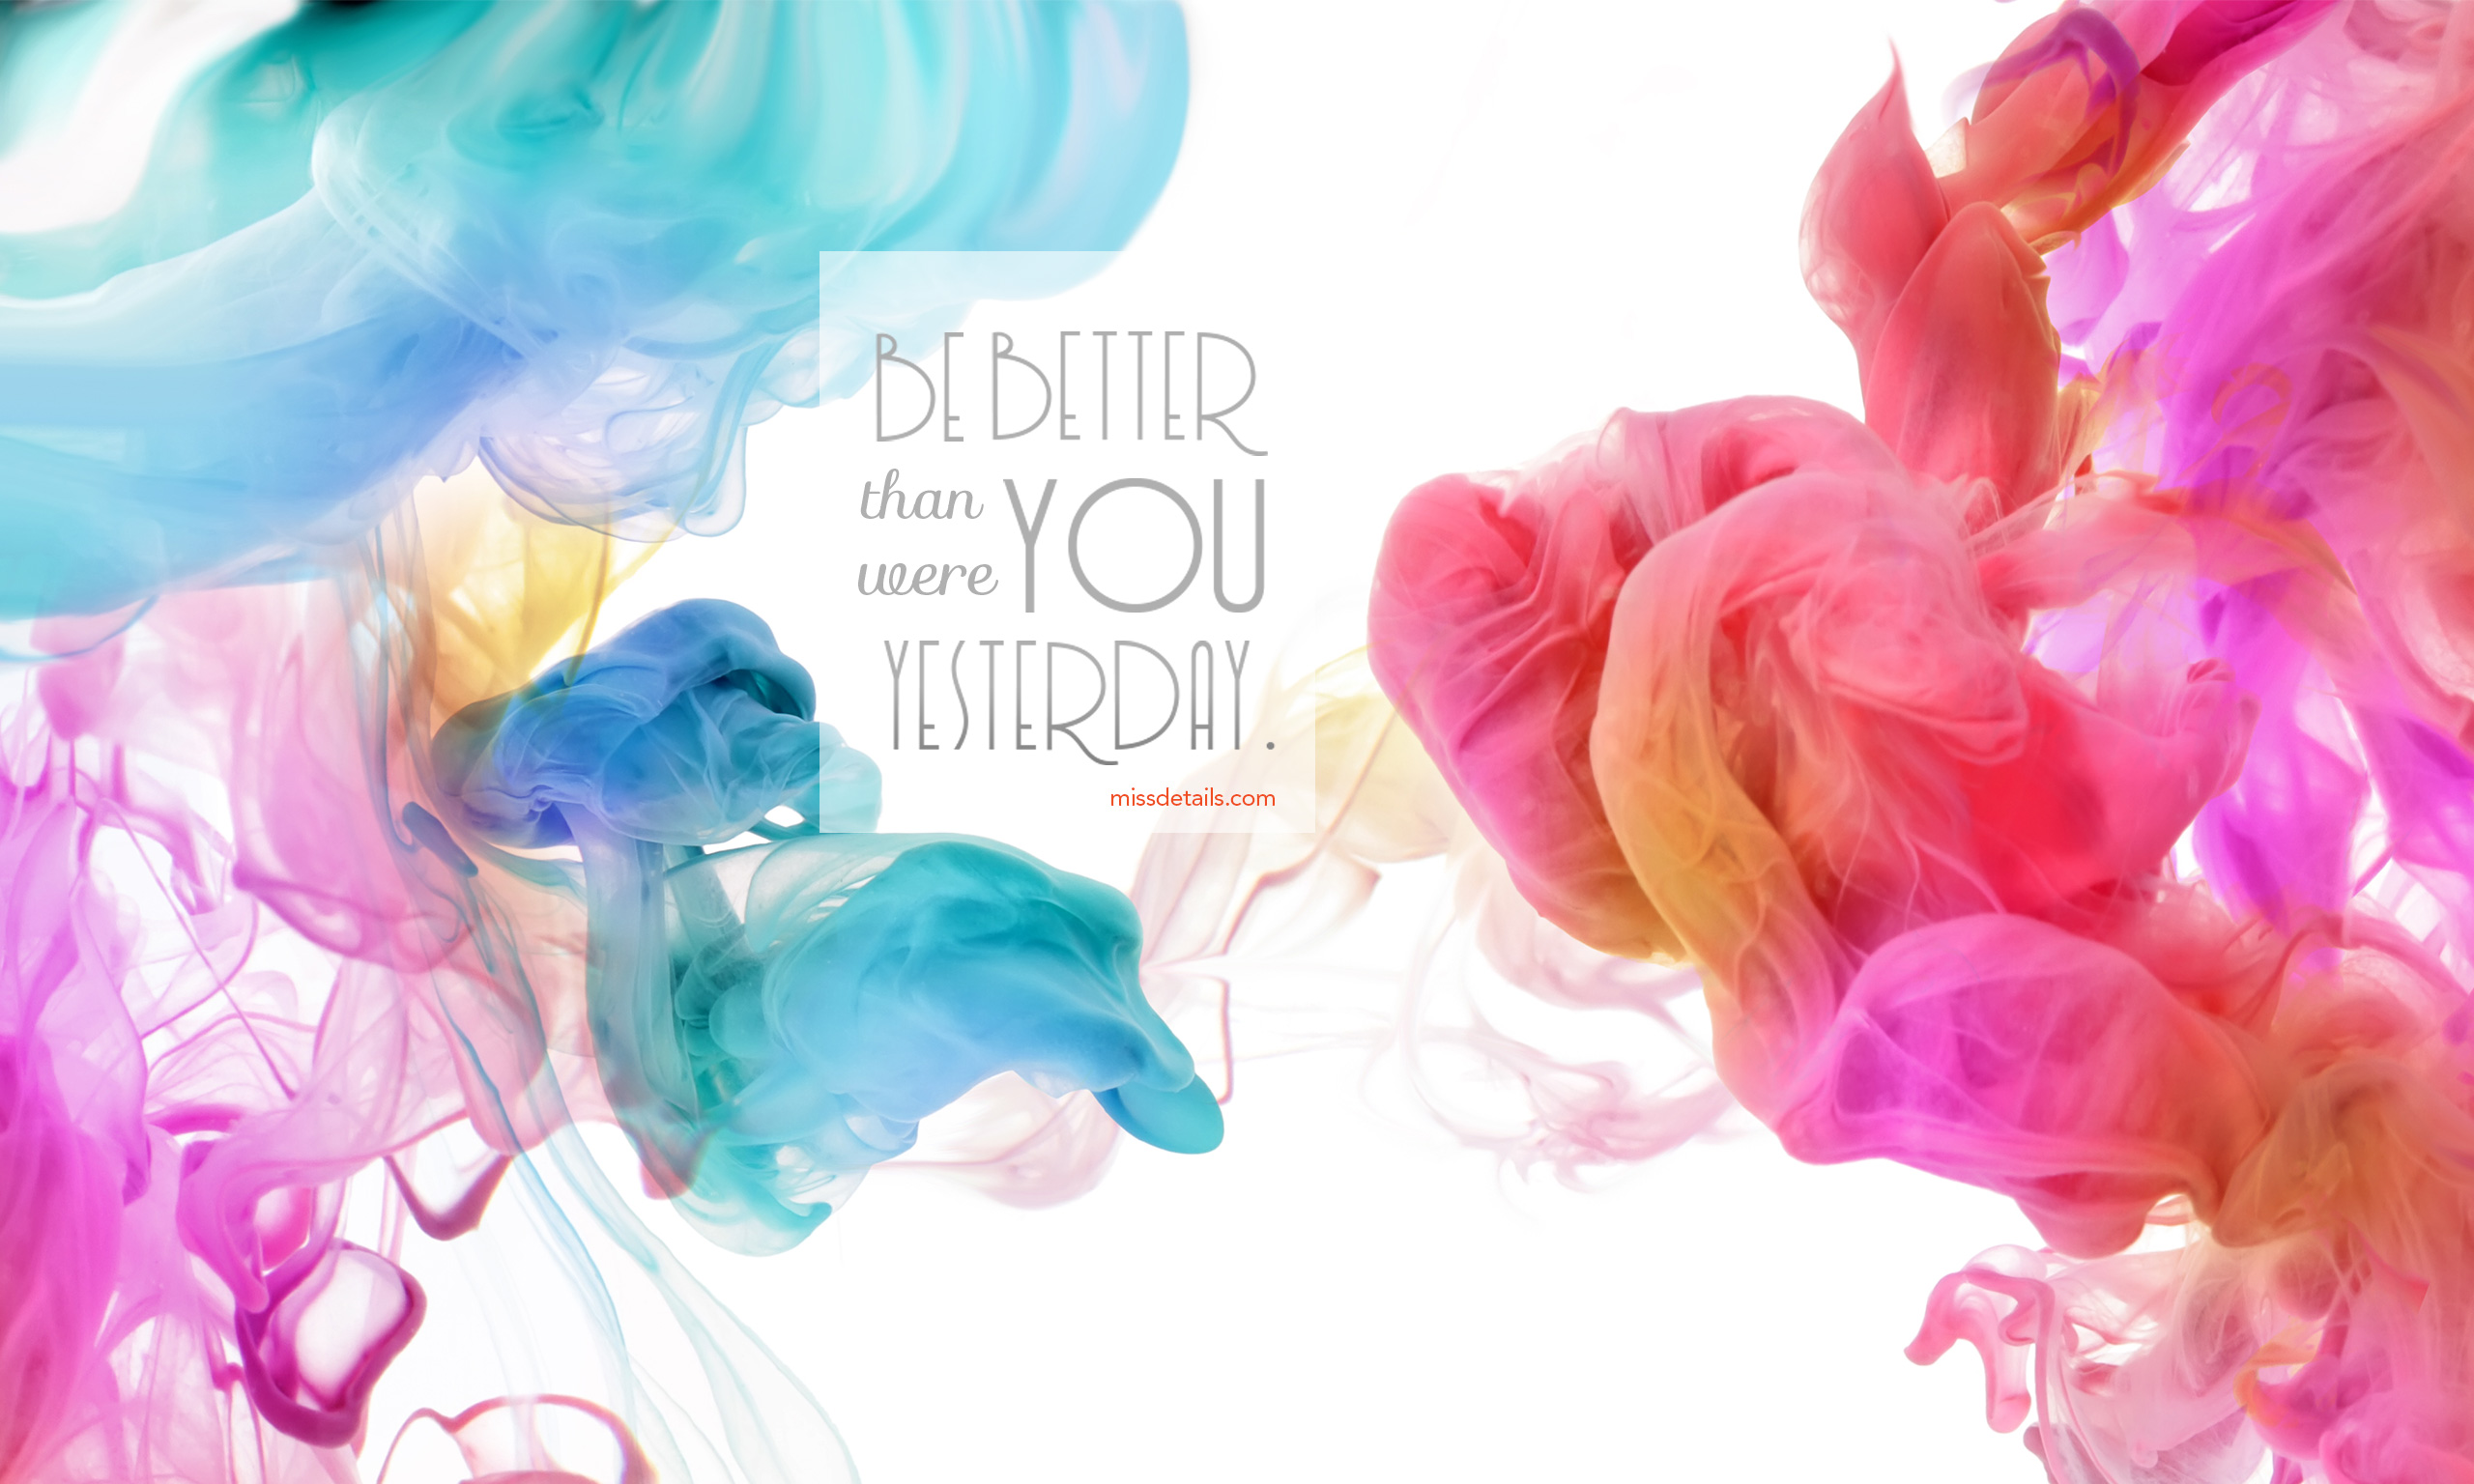 2016 Wallpaper Inspirational Quotes - Colour Smoke Background Hd - HD Wallpaper